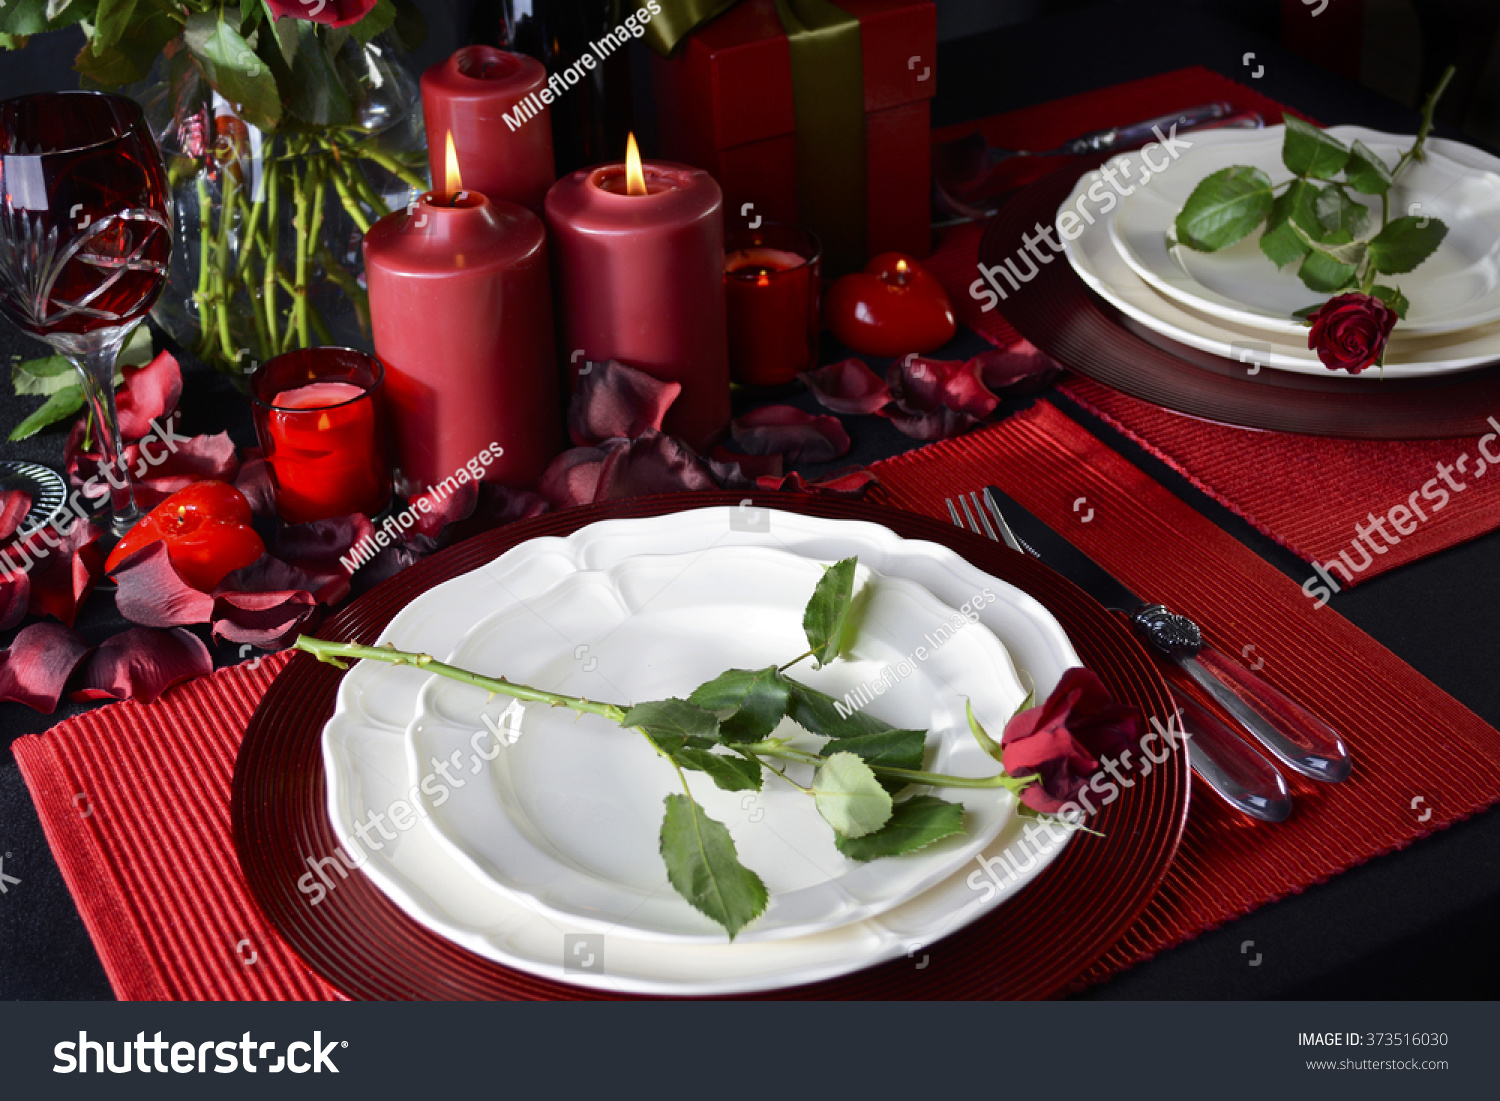 How to set a romantic dinner table for two - Romantic Valentine Candle Light Dinner For Two Table Setting For Two With Red Roses Gift